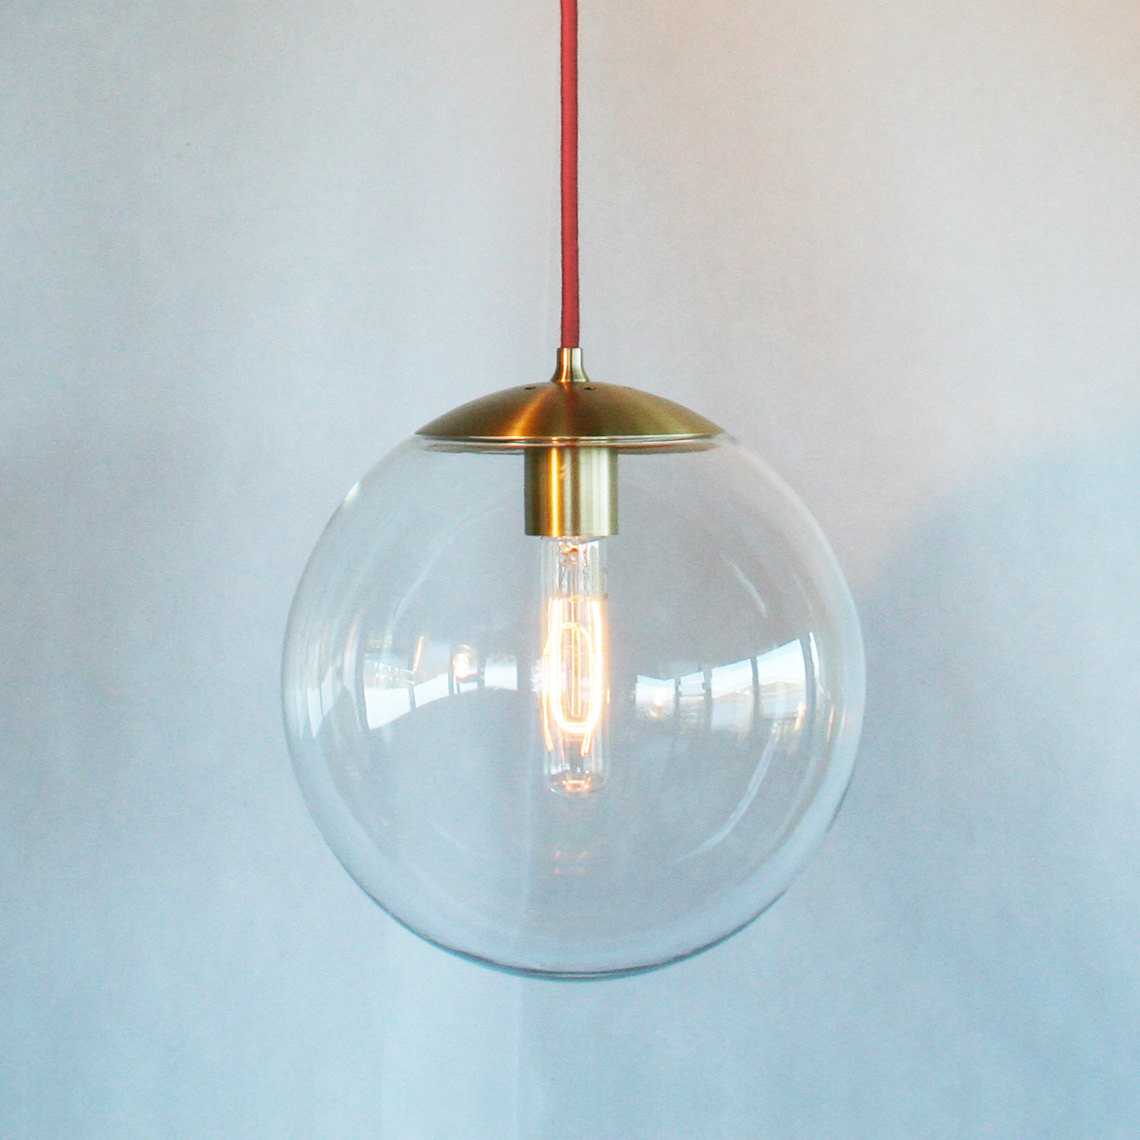 Mid century modern ceiling lights - 10 universal options of design ...